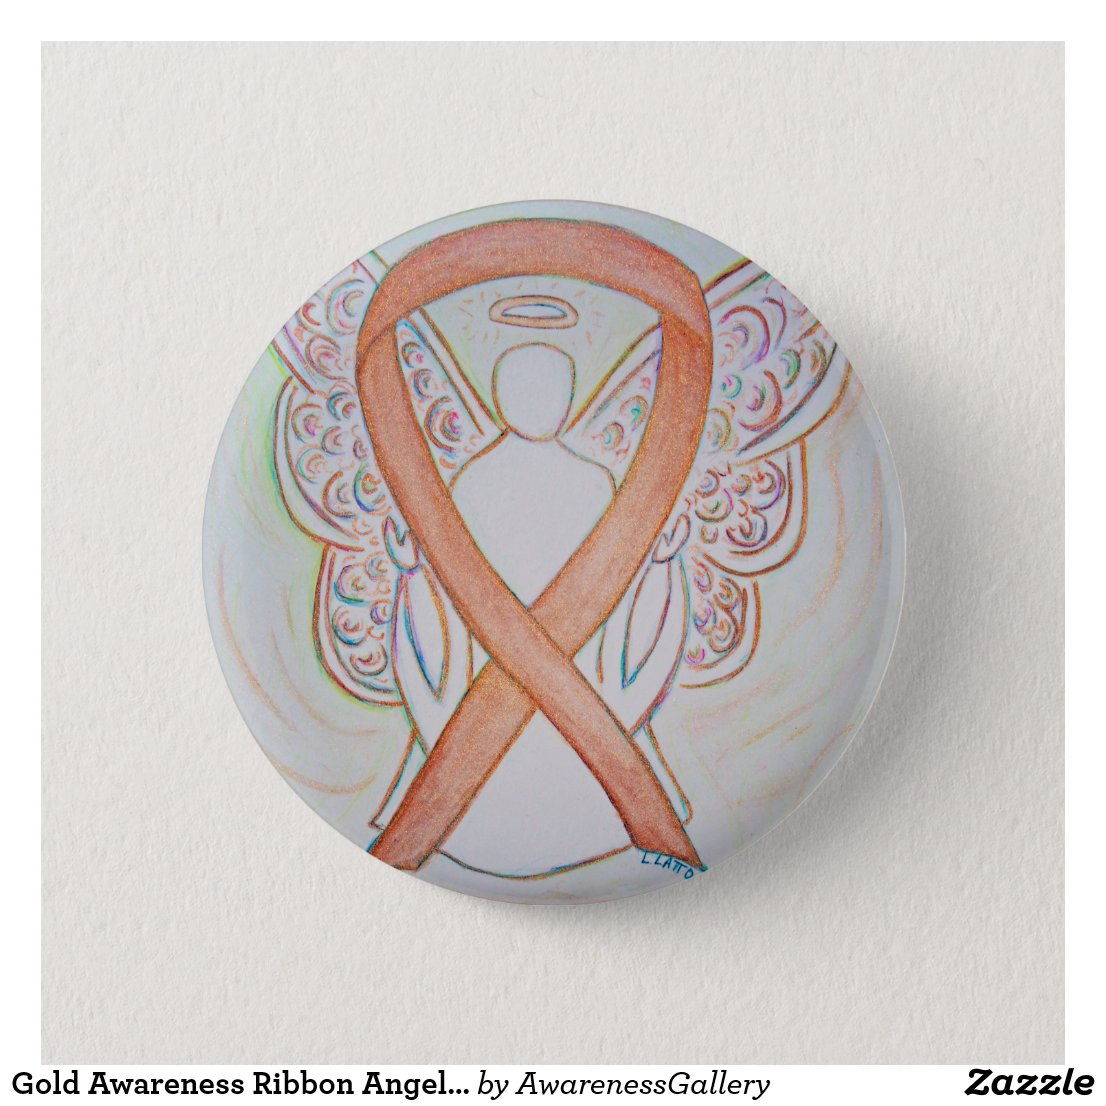 Gold Awareness Ribbon Angel Custom Art Button